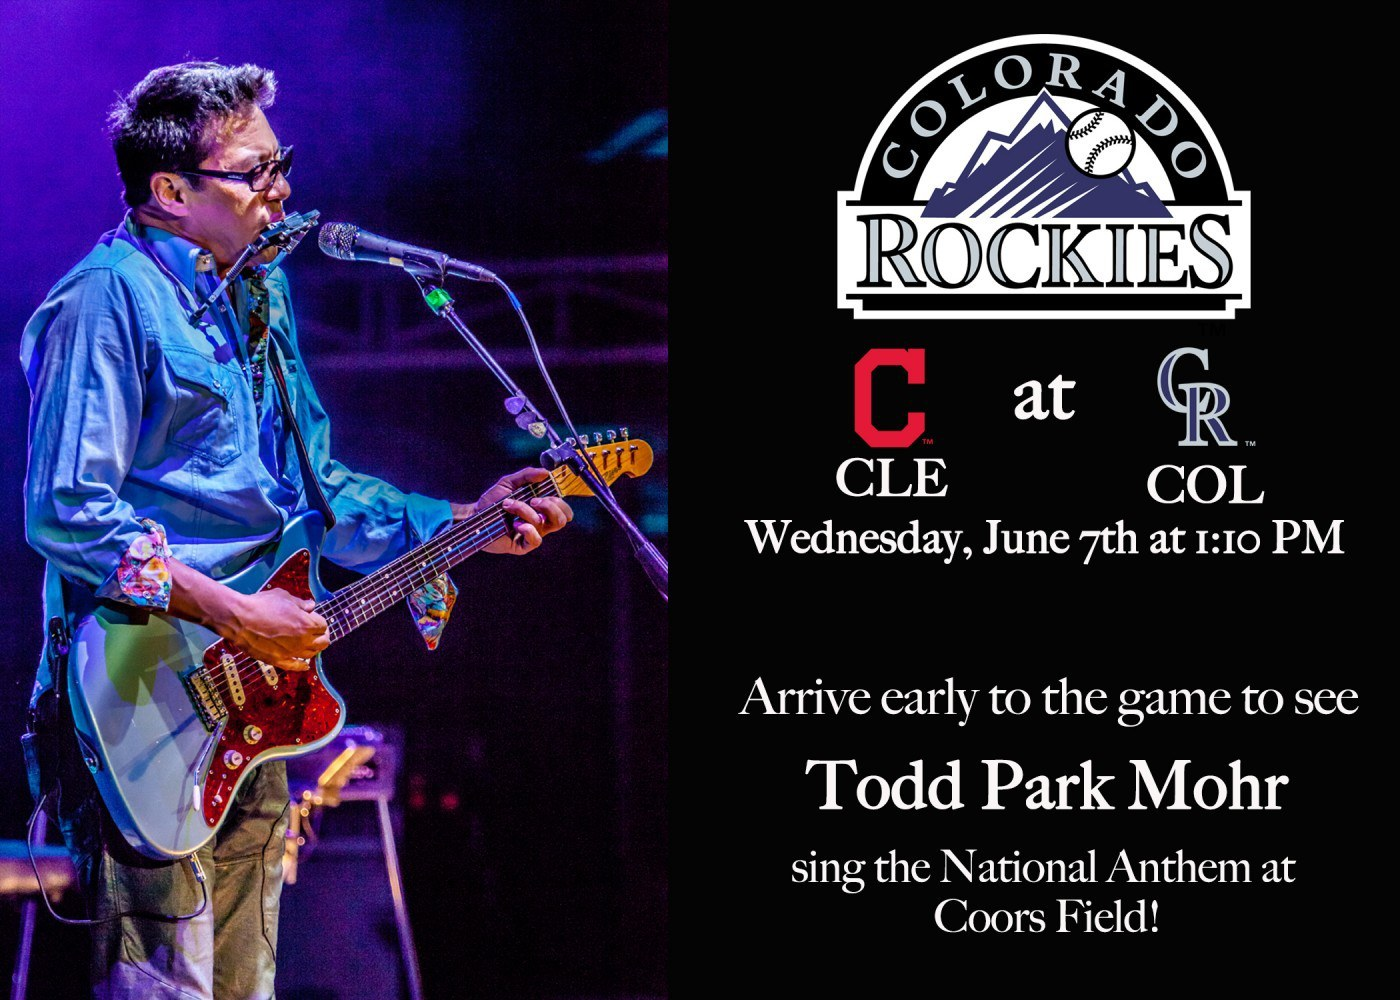 Todd Park Mohr singing the national anthem at Rockies Game TOMORROW June 7th!